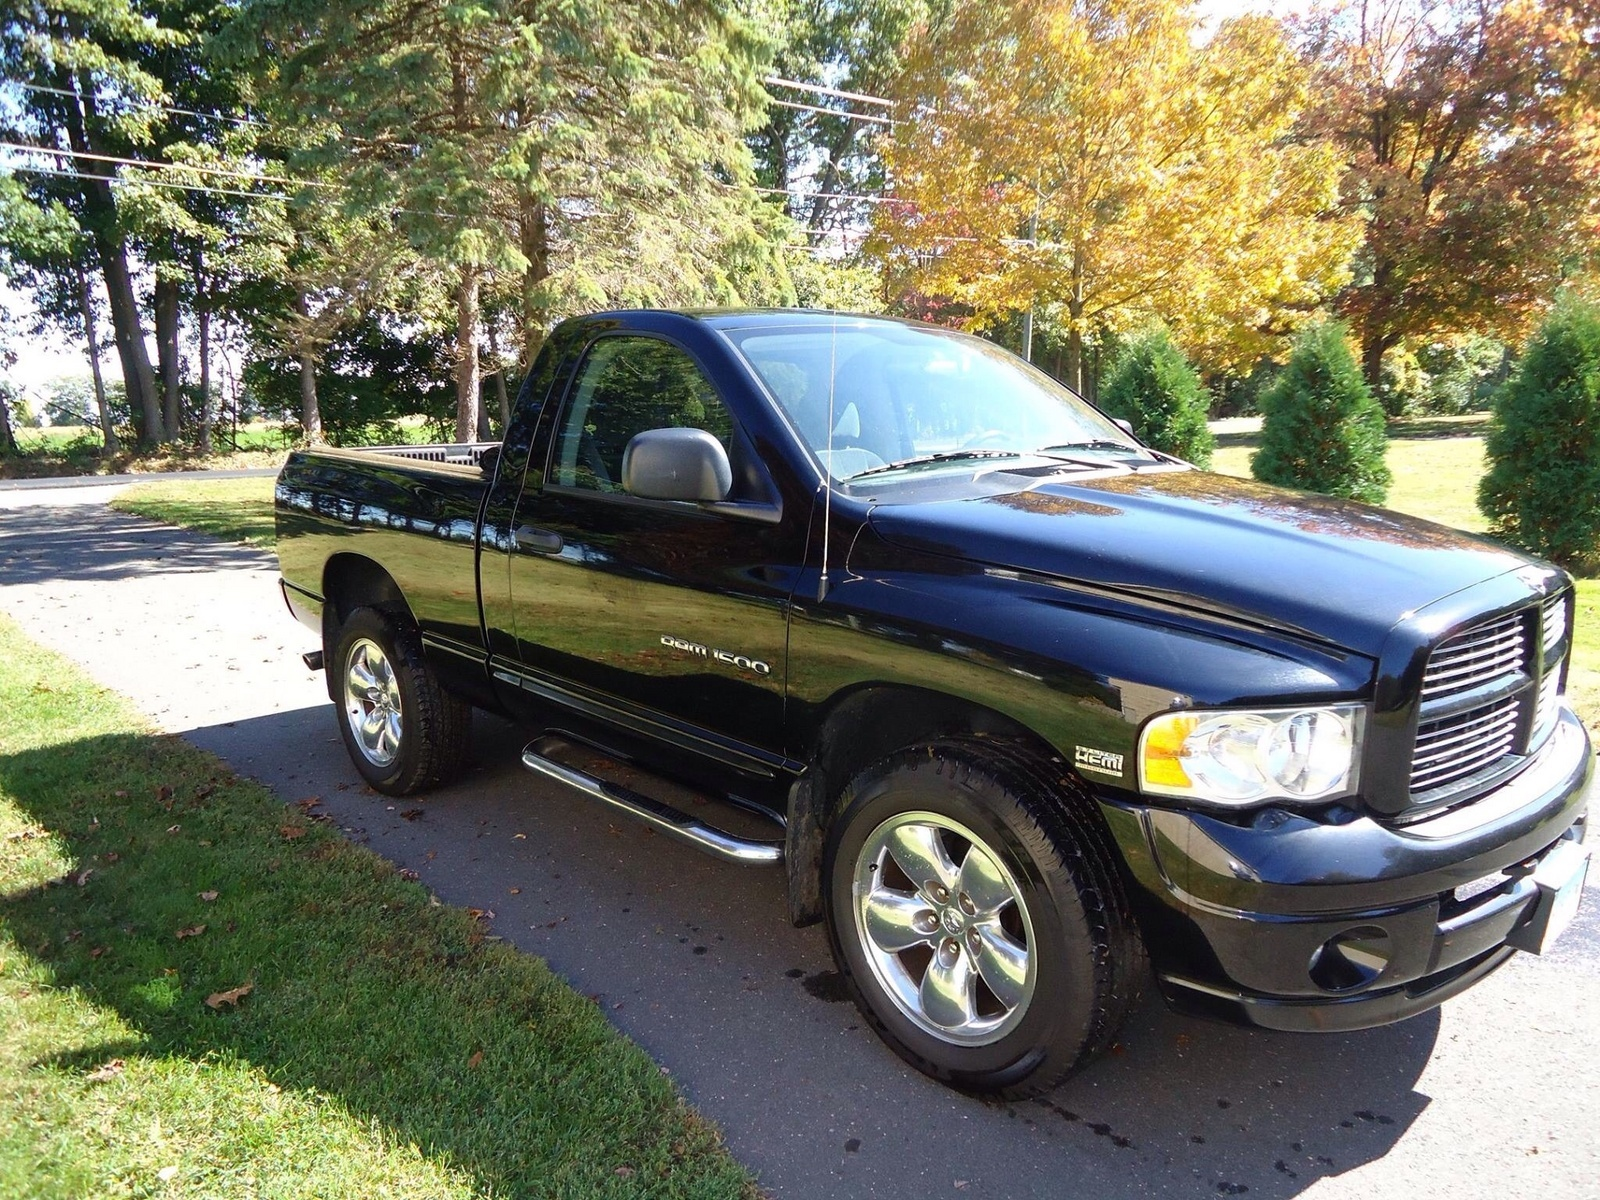 Ram Rt For Sale >> Dodge Ram 1500 Questions - Have a Dodge Ram 1500 w/ 5.7 L Hemi. Mpg is 11.4. How can I make it ...